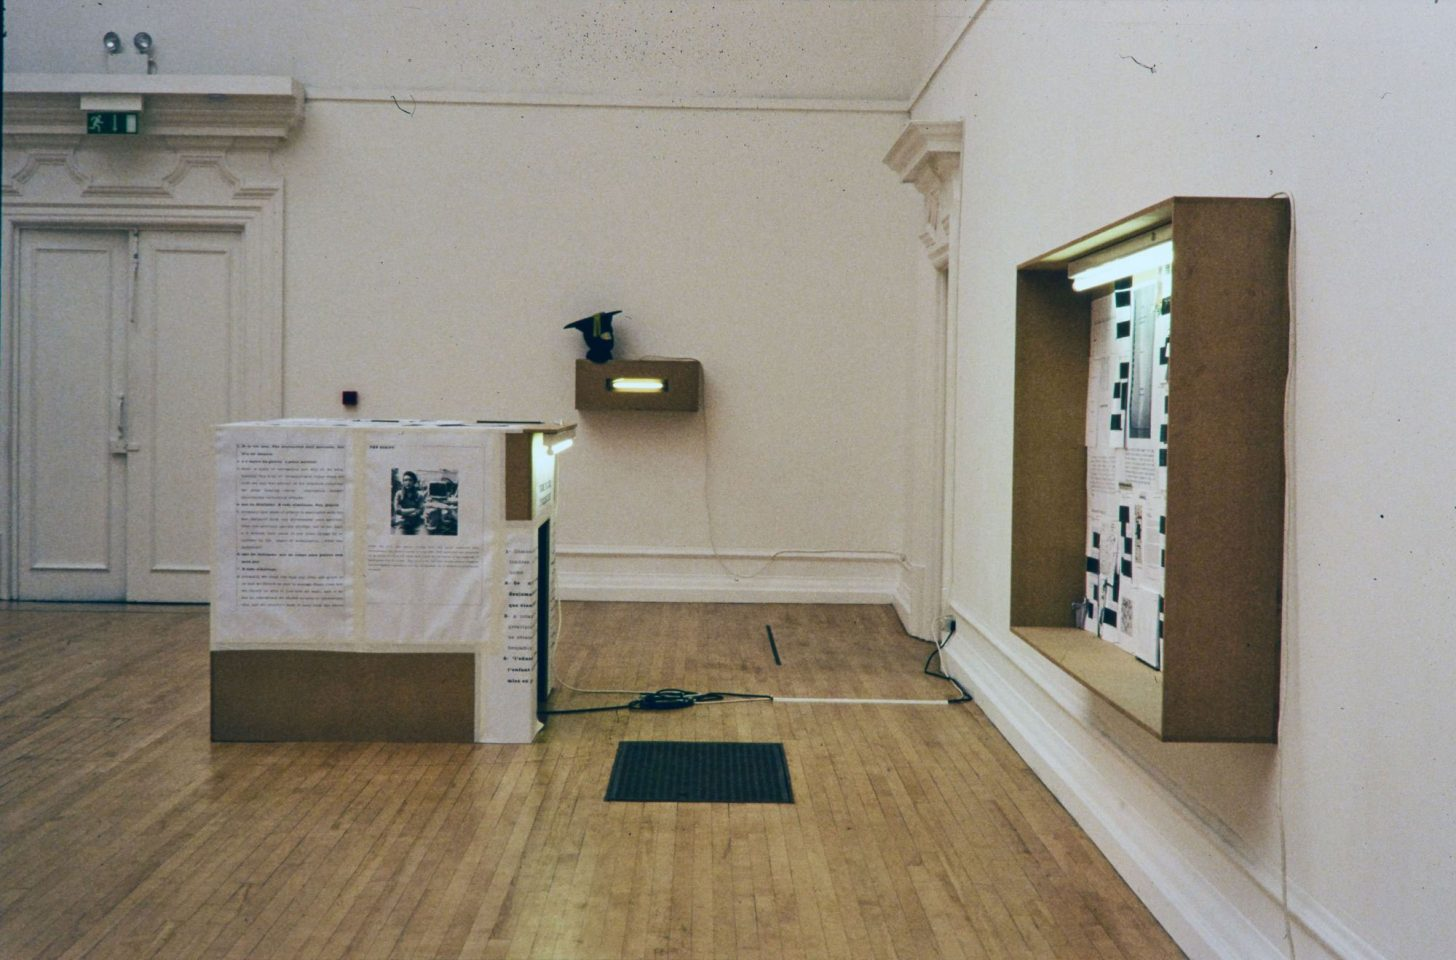 Installation view from 2004 exhibition Perfectly Placed.